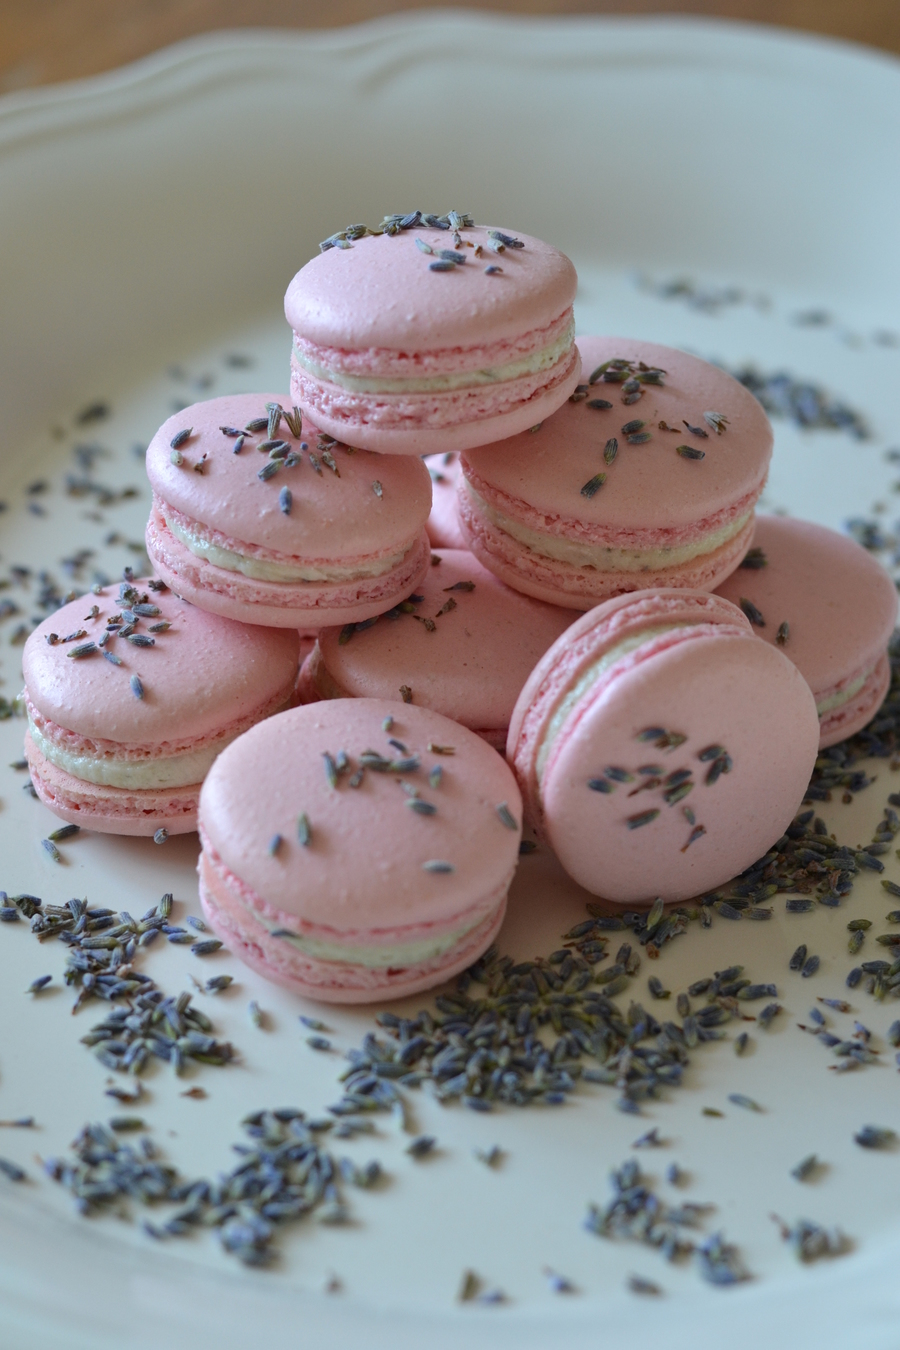 Lavender Amp Honey Macarons  on Cake Central